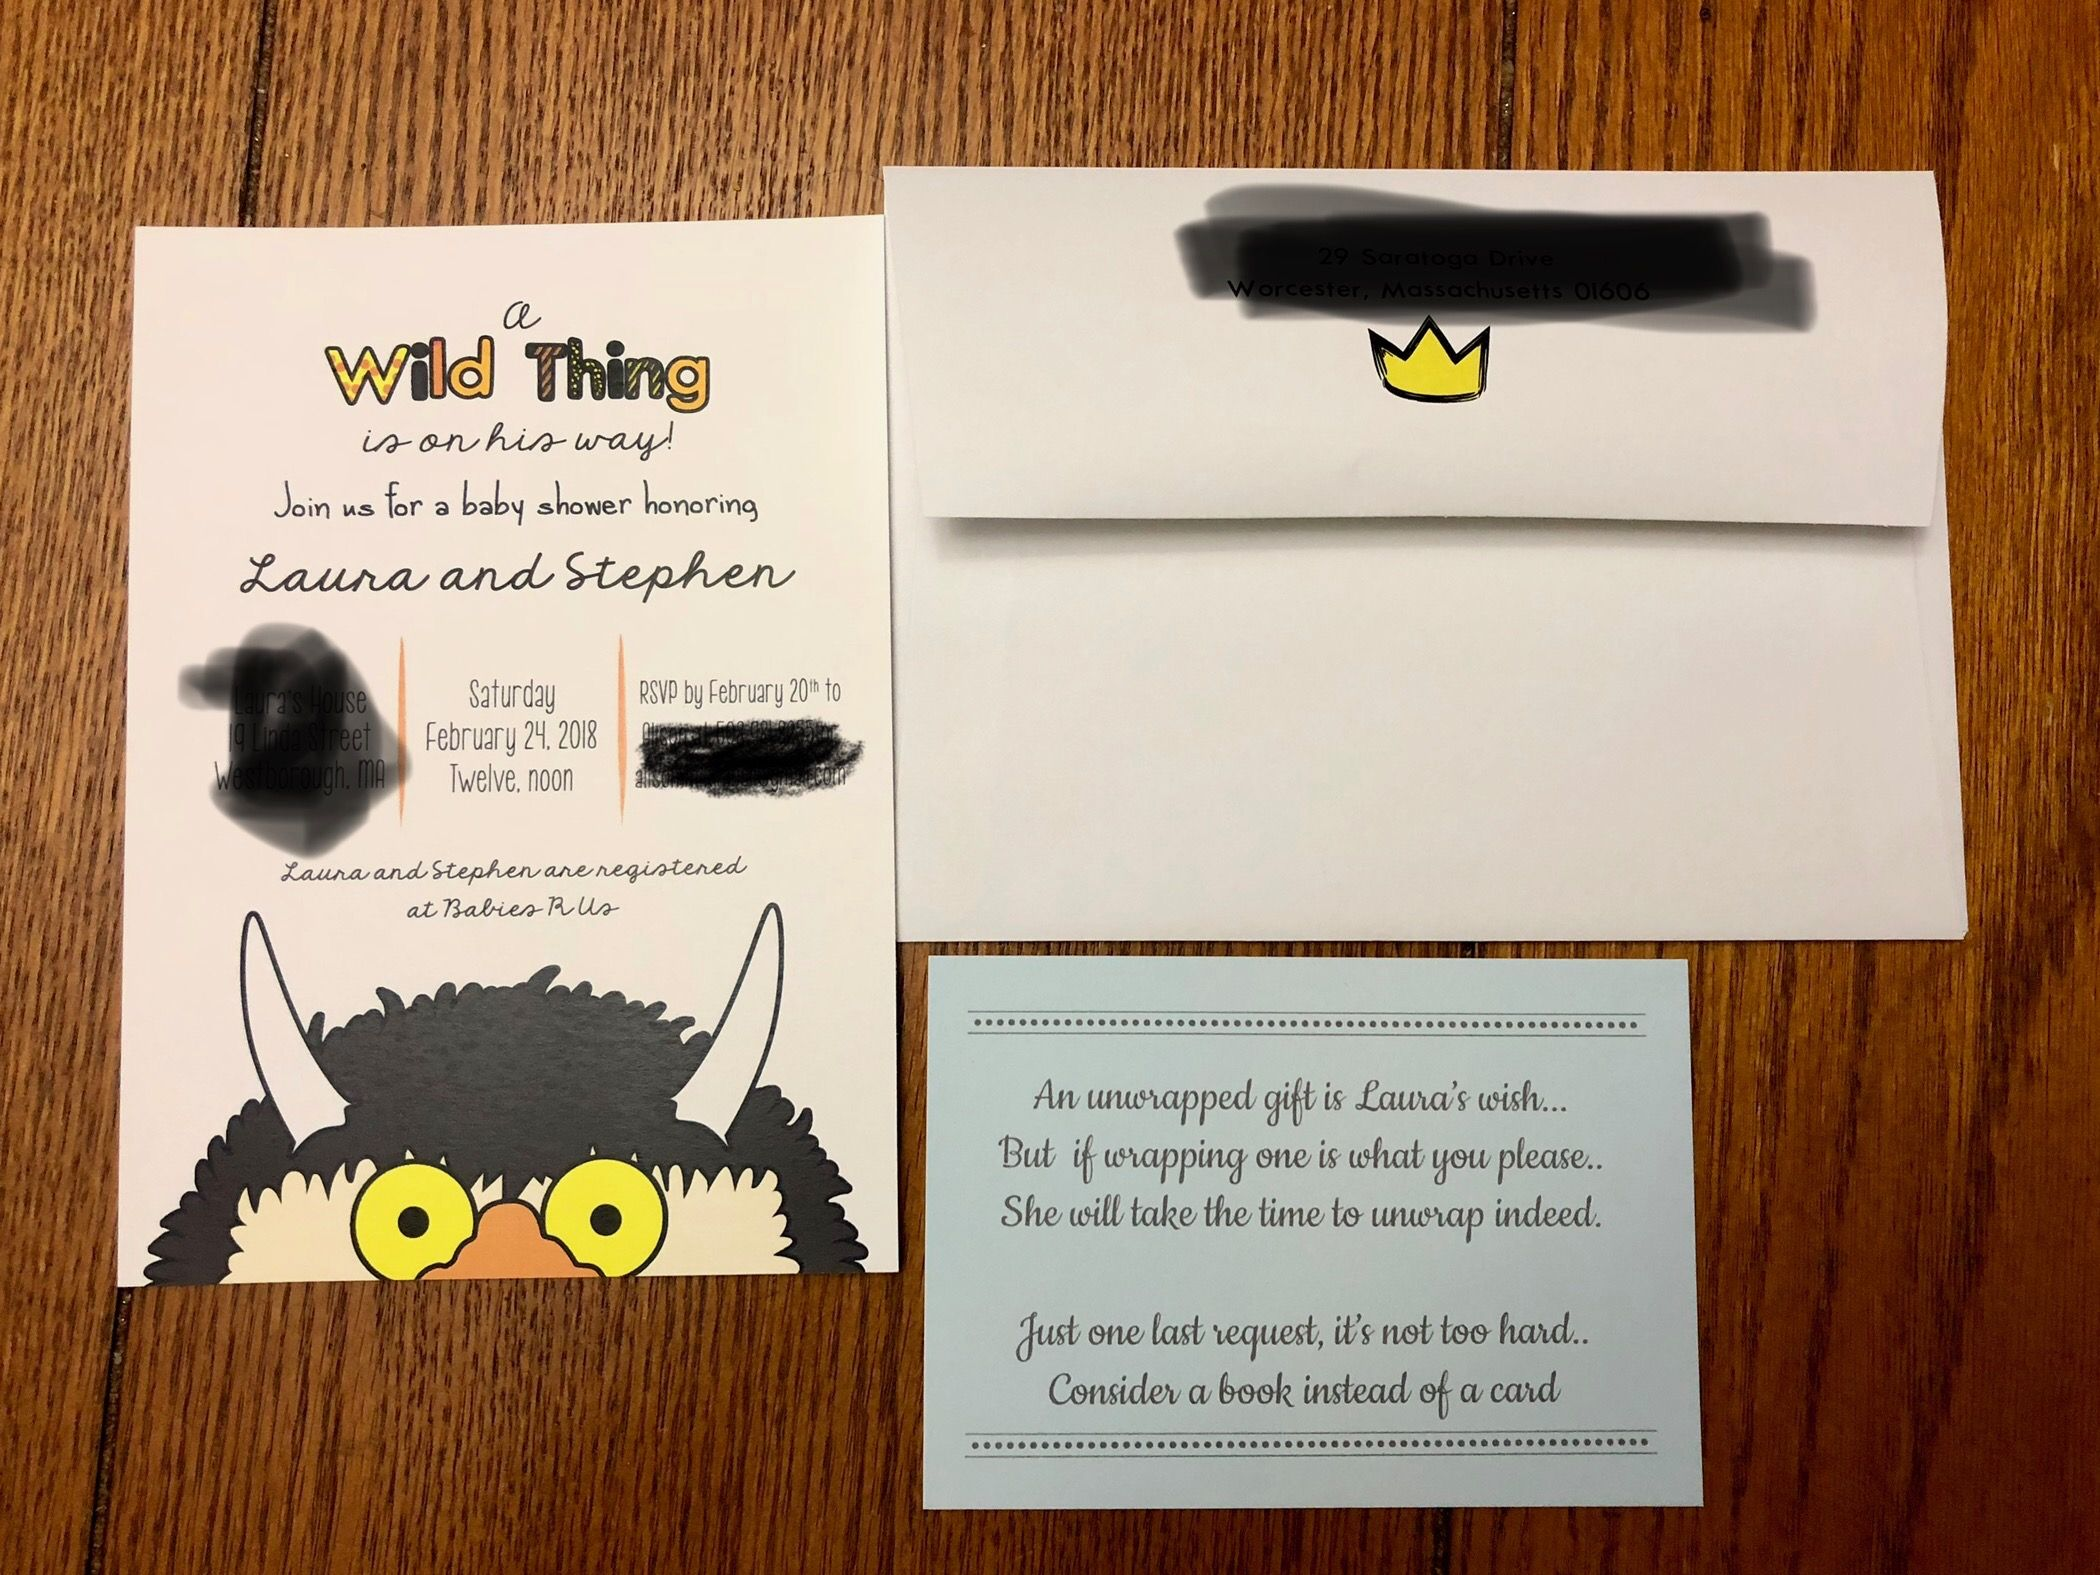 Where the Wild Things Are shower invitation Unwrapped gift poem ...